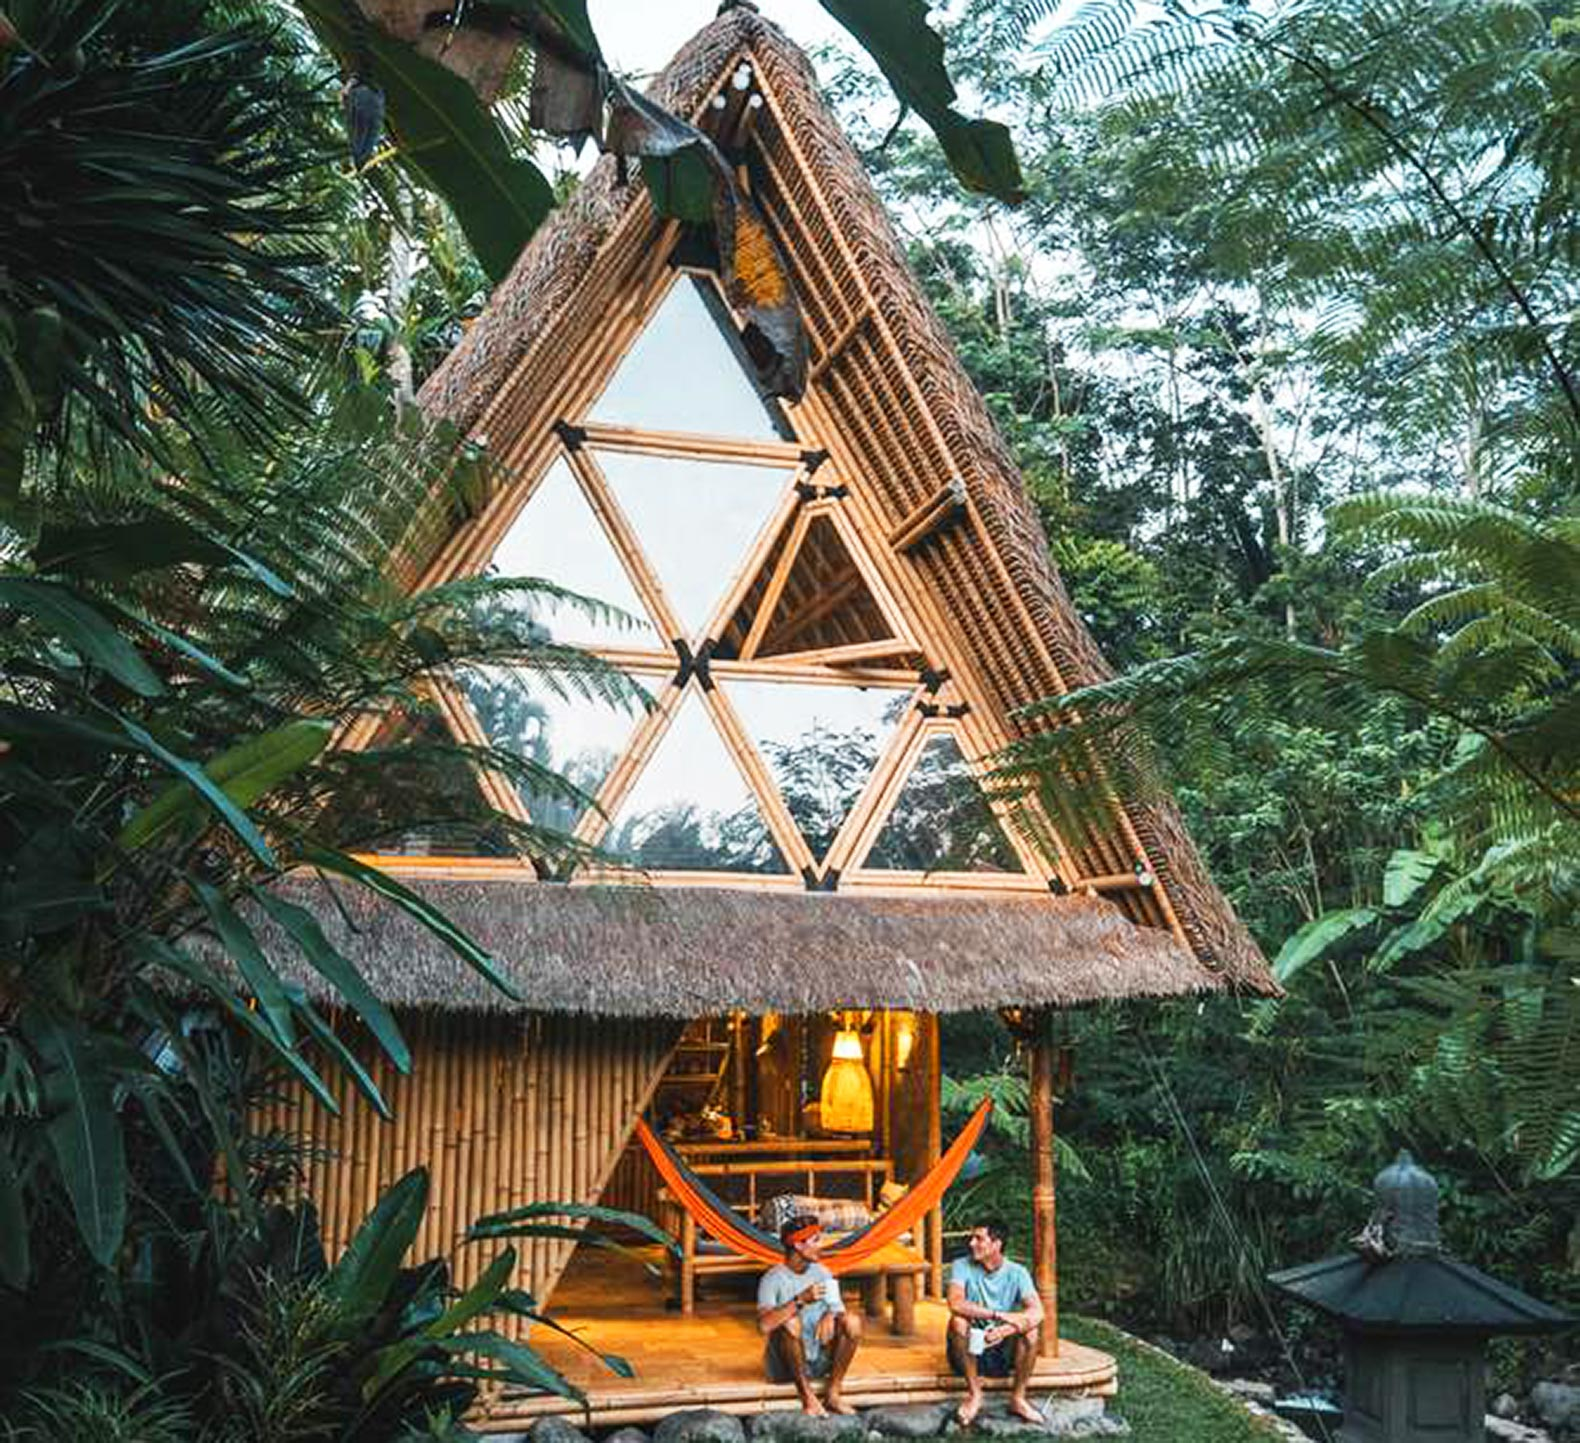 Go way off-grid in this beautiful bamboo hut tucked into Bali's lush mountains